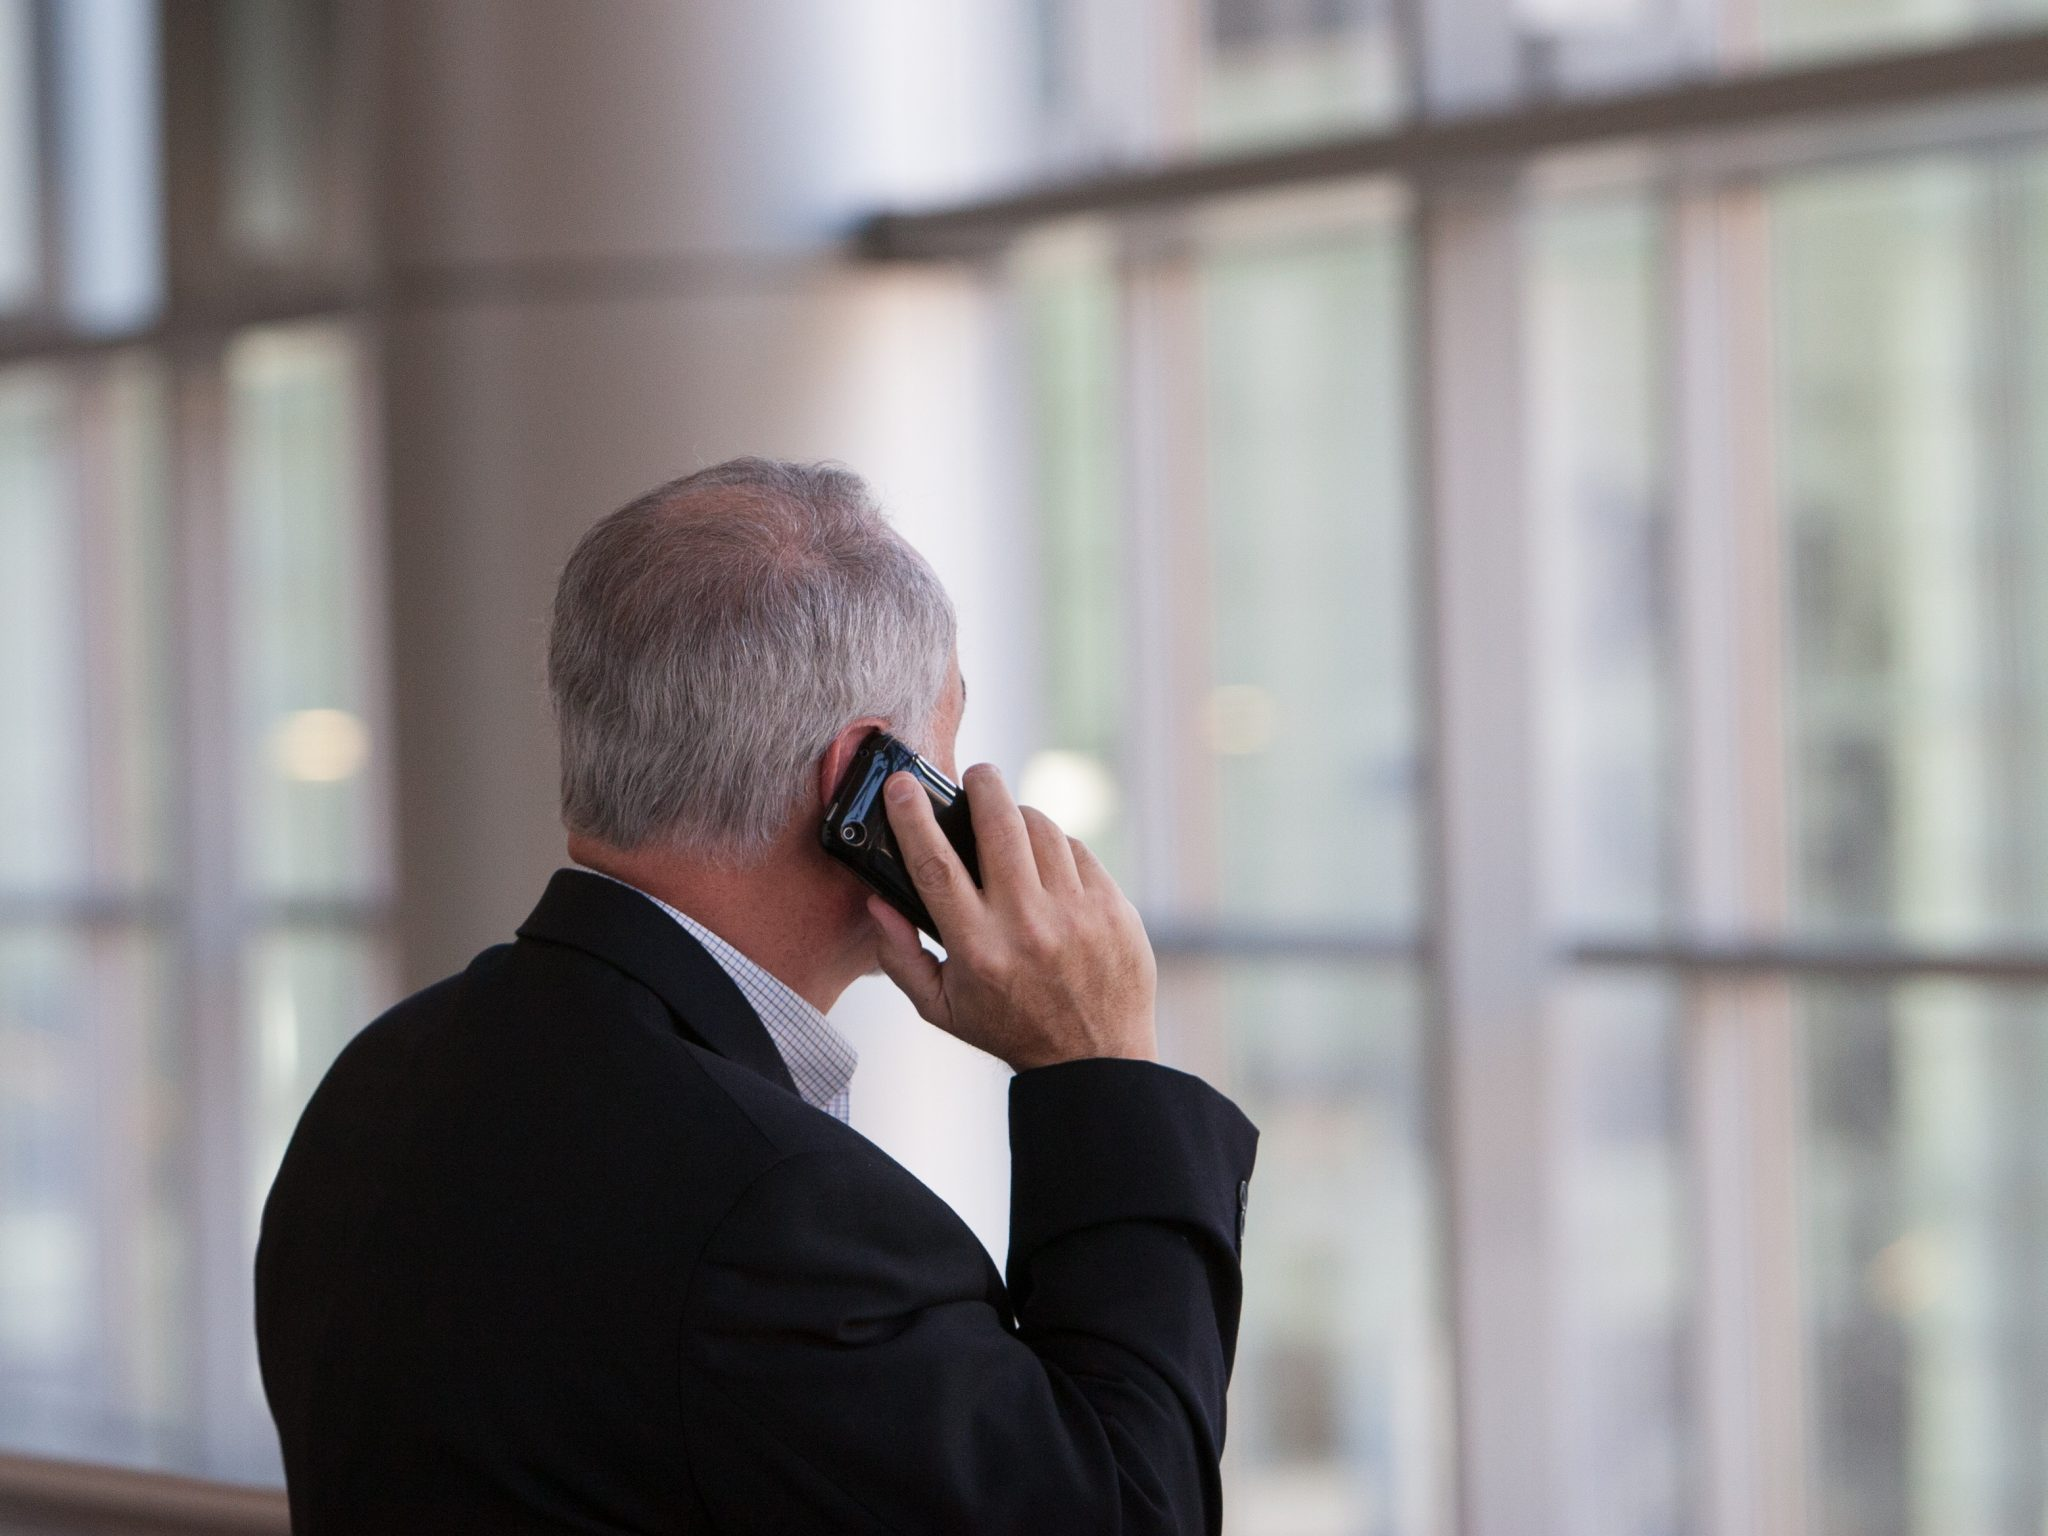 Rise of Cloud Telephony in the Enterprise Environment